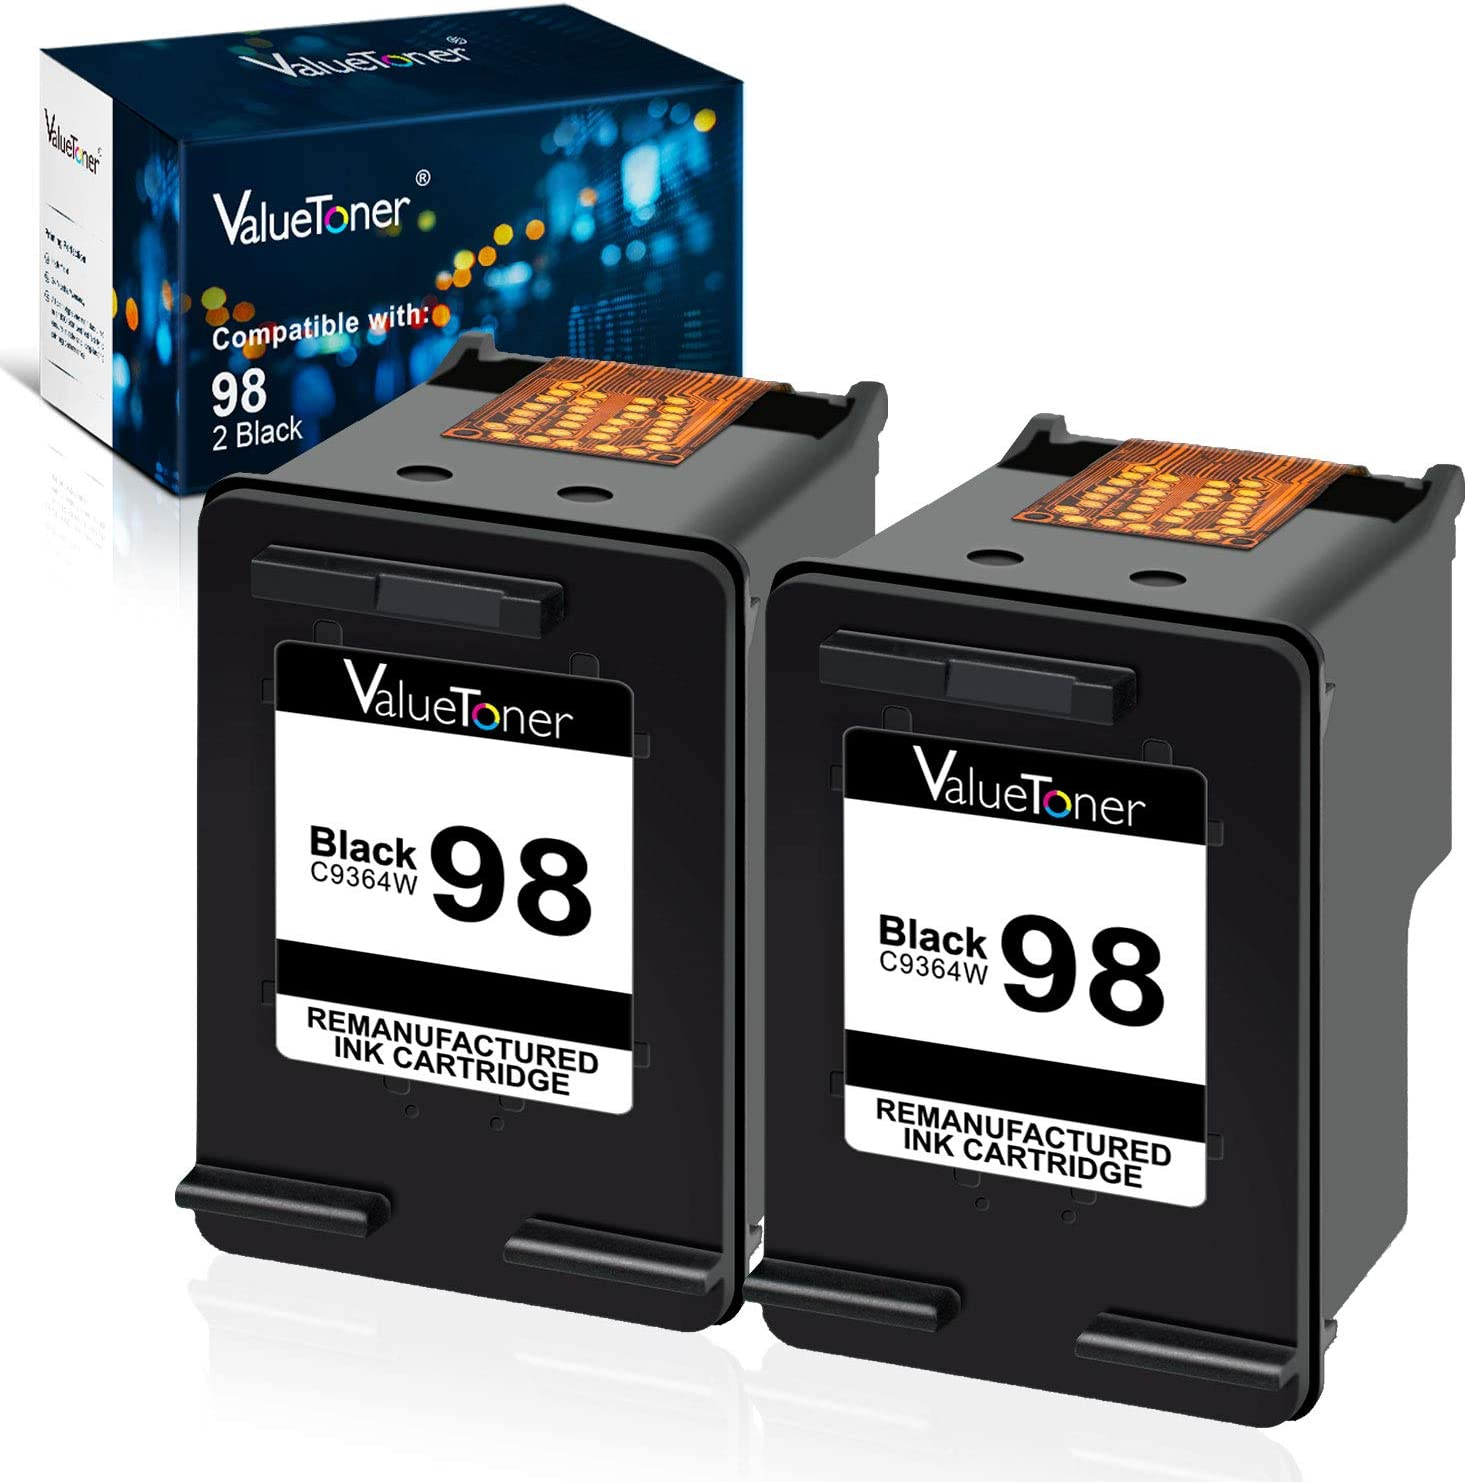 Valuetoner Remanufactured Ink Cartridge Replacement for HP 98 (C9364WN) for Officejet 150 100 6310 H470, PhotoSmart 2570 2575 8050 C4180 C4150, Deskjet 460 5940 D4145 D4155 Printer (Black, 2 Pack)